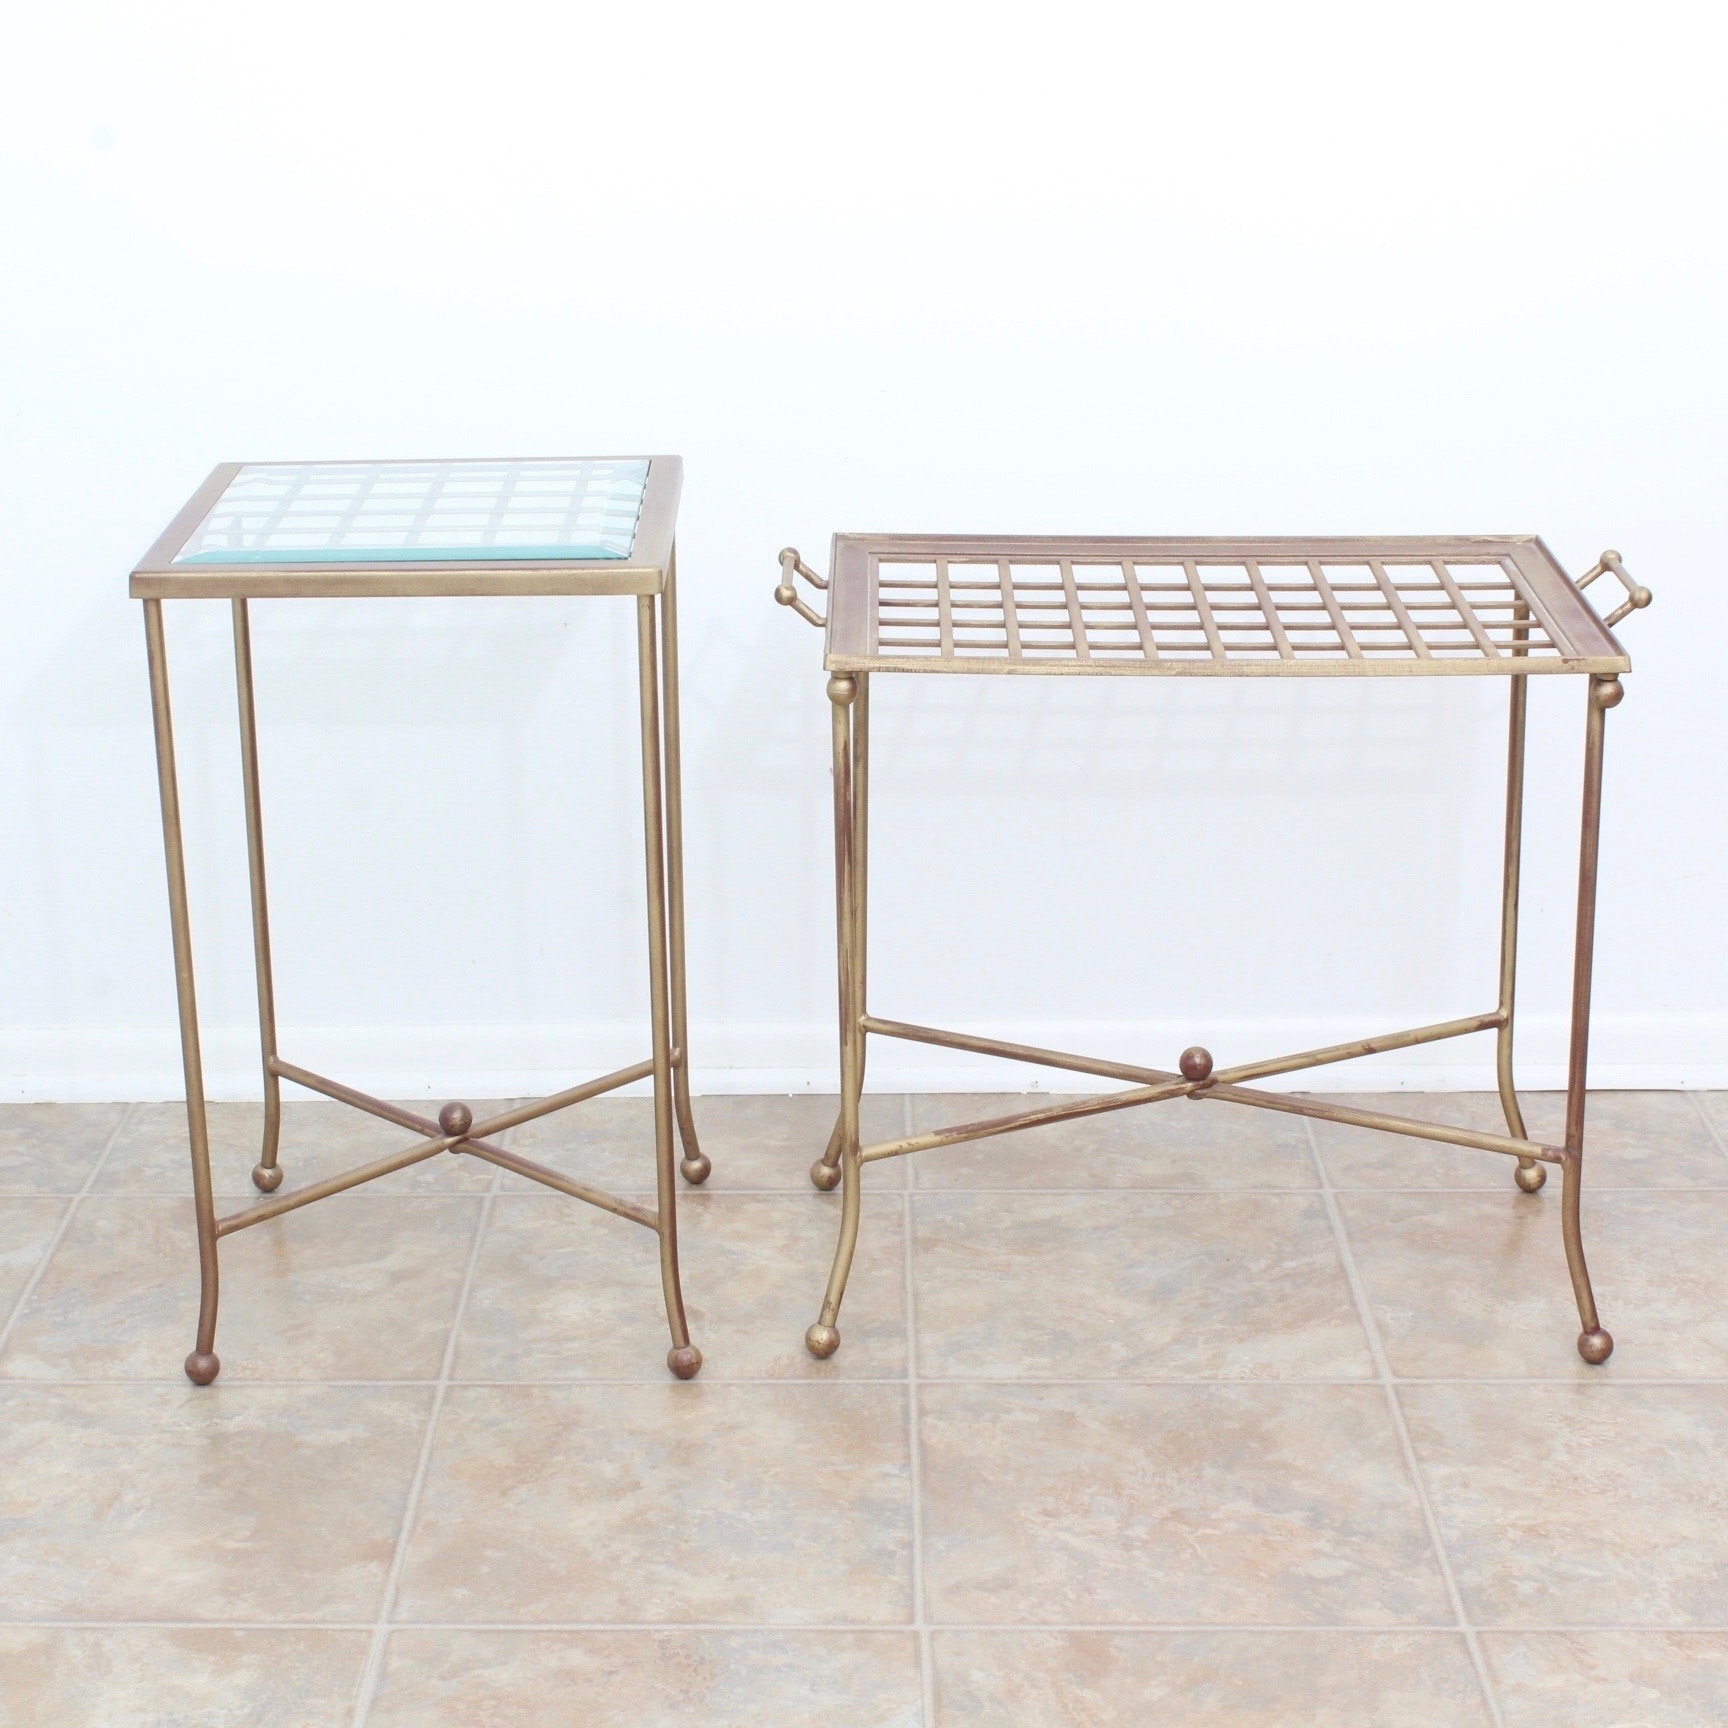 Two Vintage Wrought Iron Accent Tables By Bombay Company ...